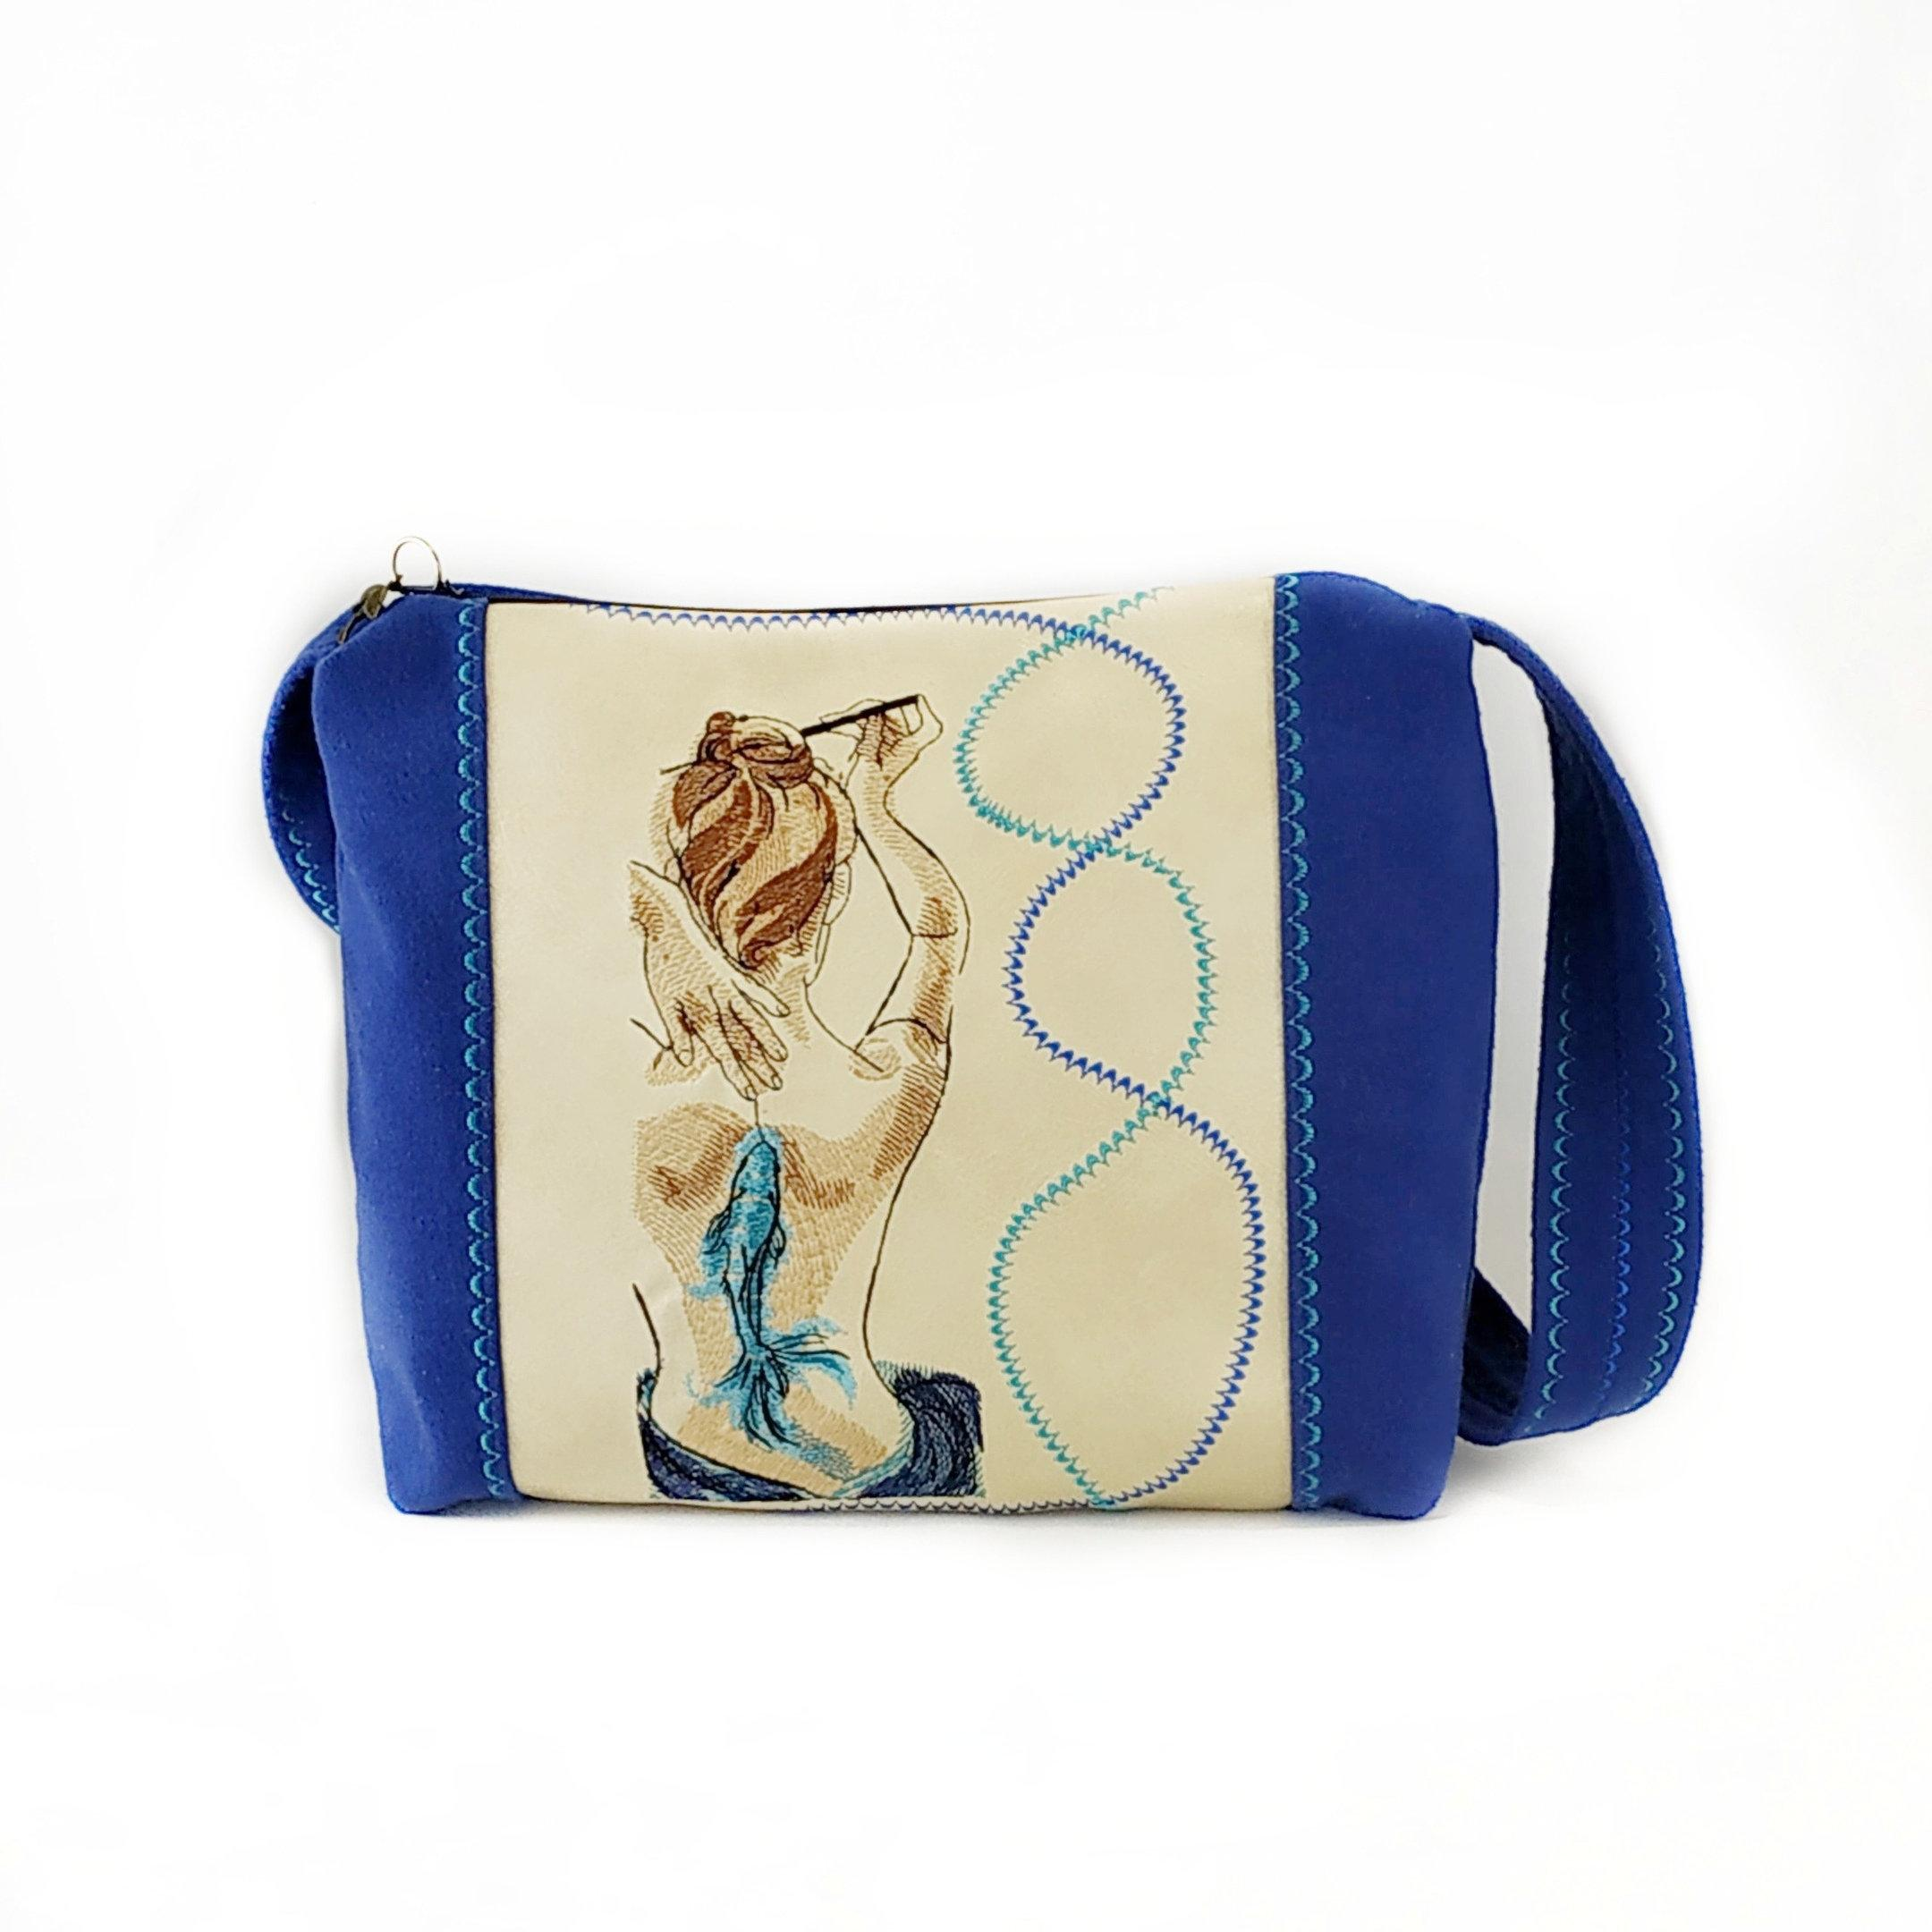 Embroidered bag with Girl's back design